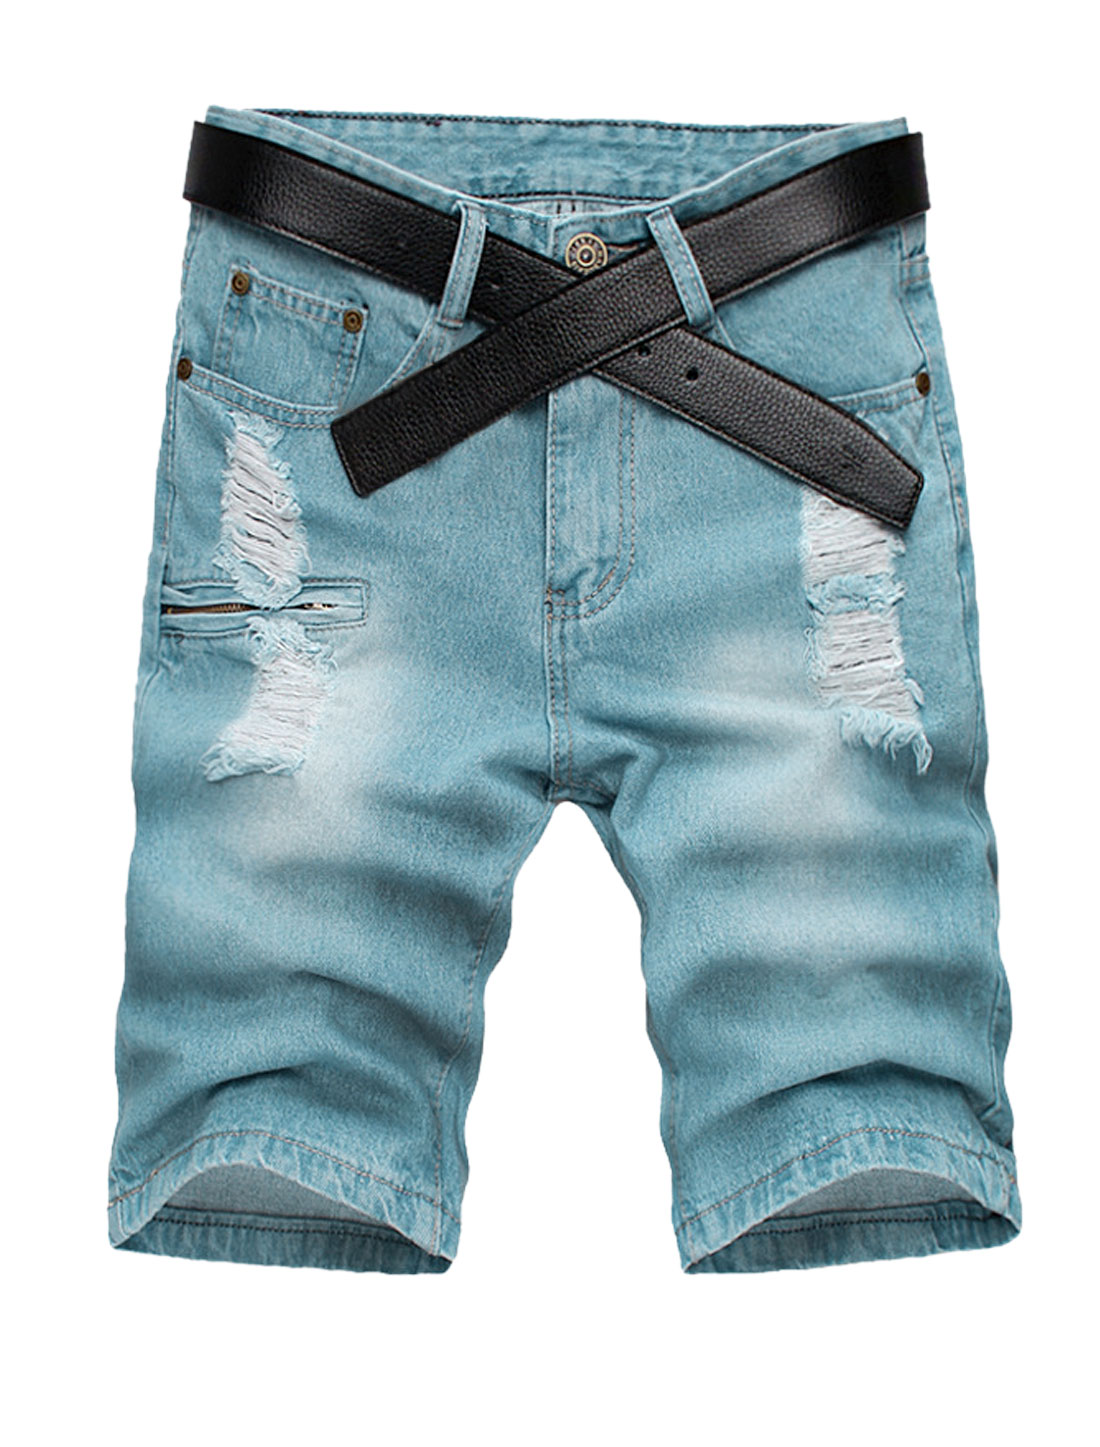 Men One Button Closed Zip Fly Destroyed Design Pockets Jean Shorts W32